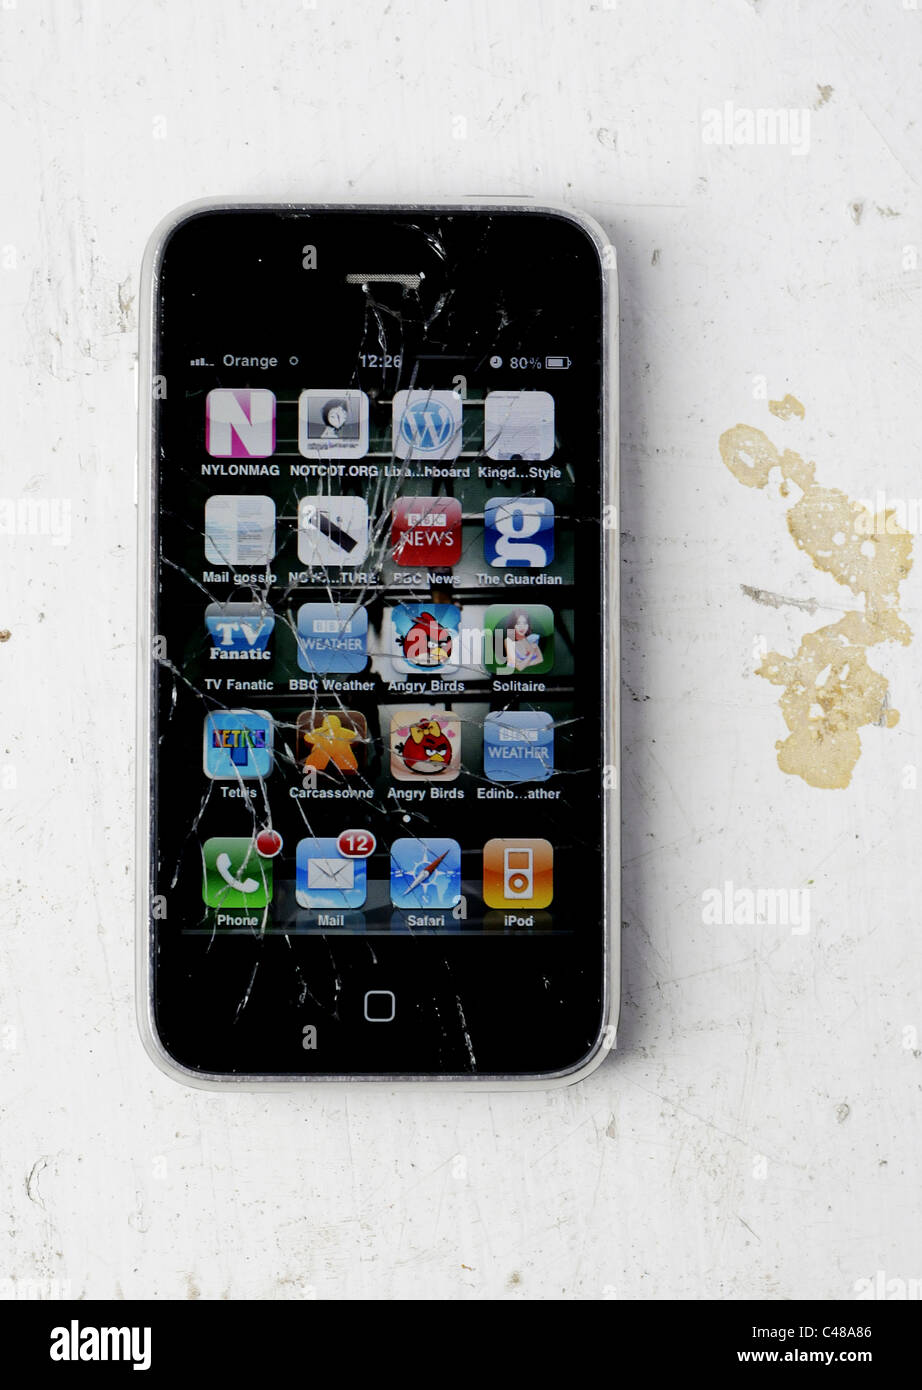 La rupture d un iPhone avec un écran fissuré Banque D Images, Photo ... 9d874e01419